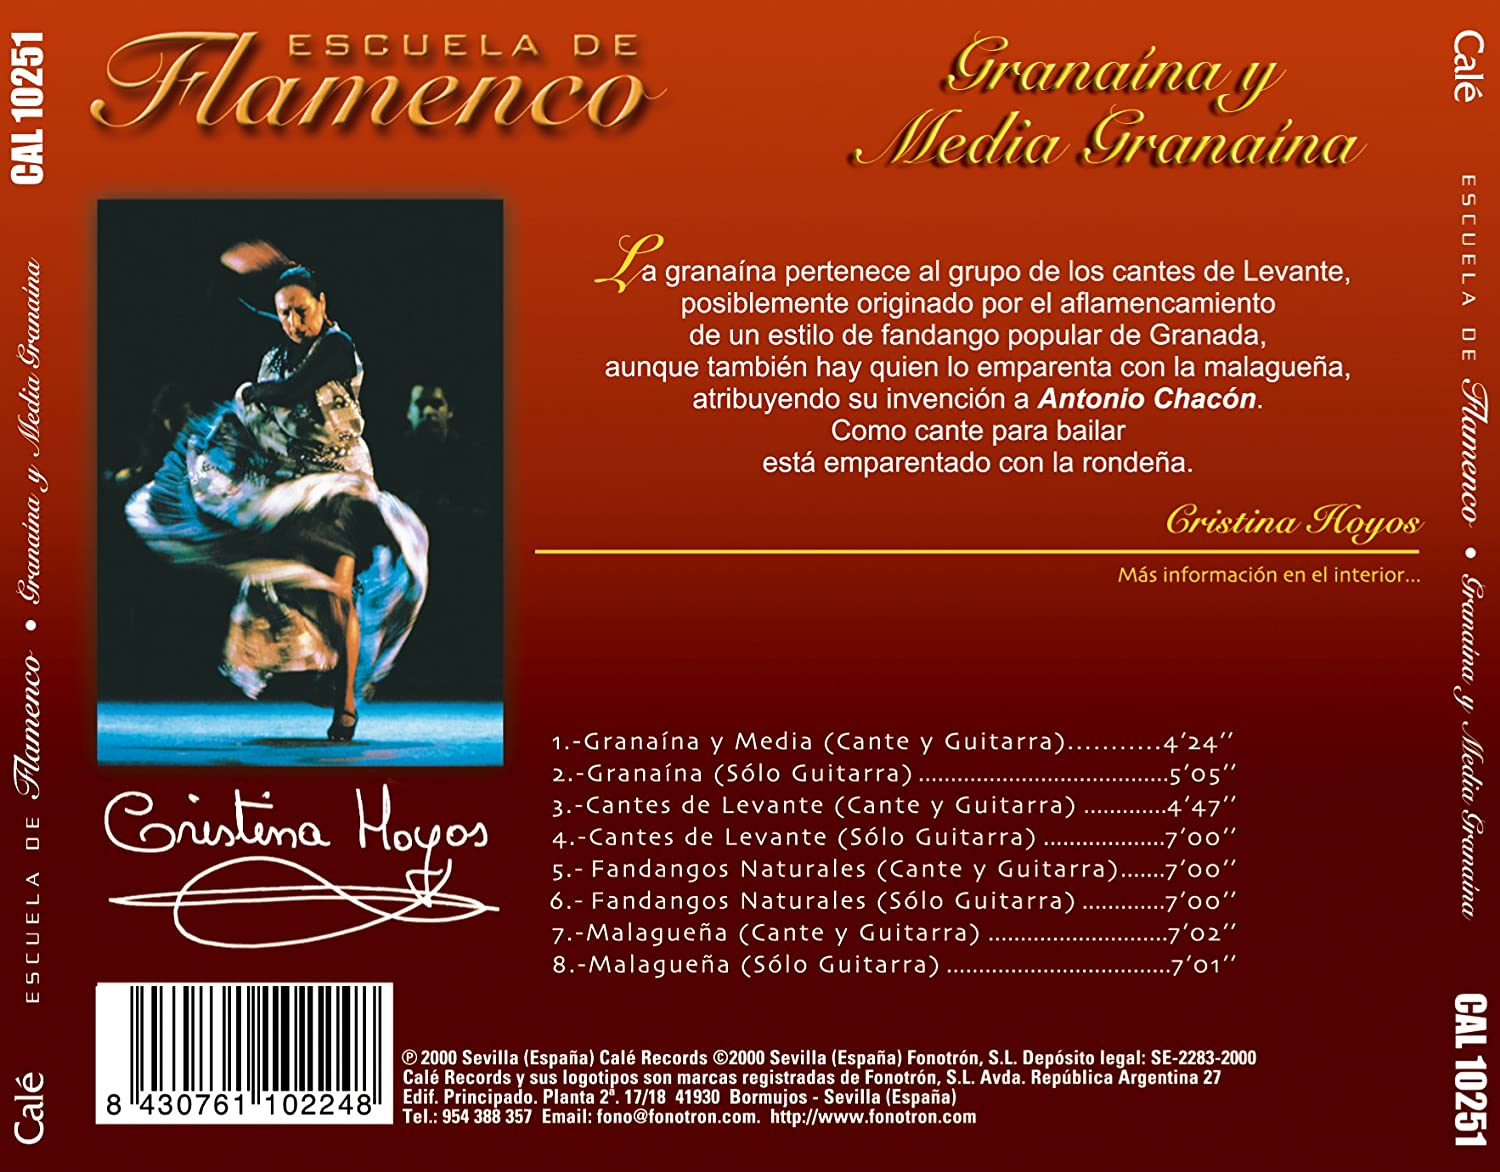 Escuela De Flamenco -Granaina: Various Artists: Amazon.es: Música